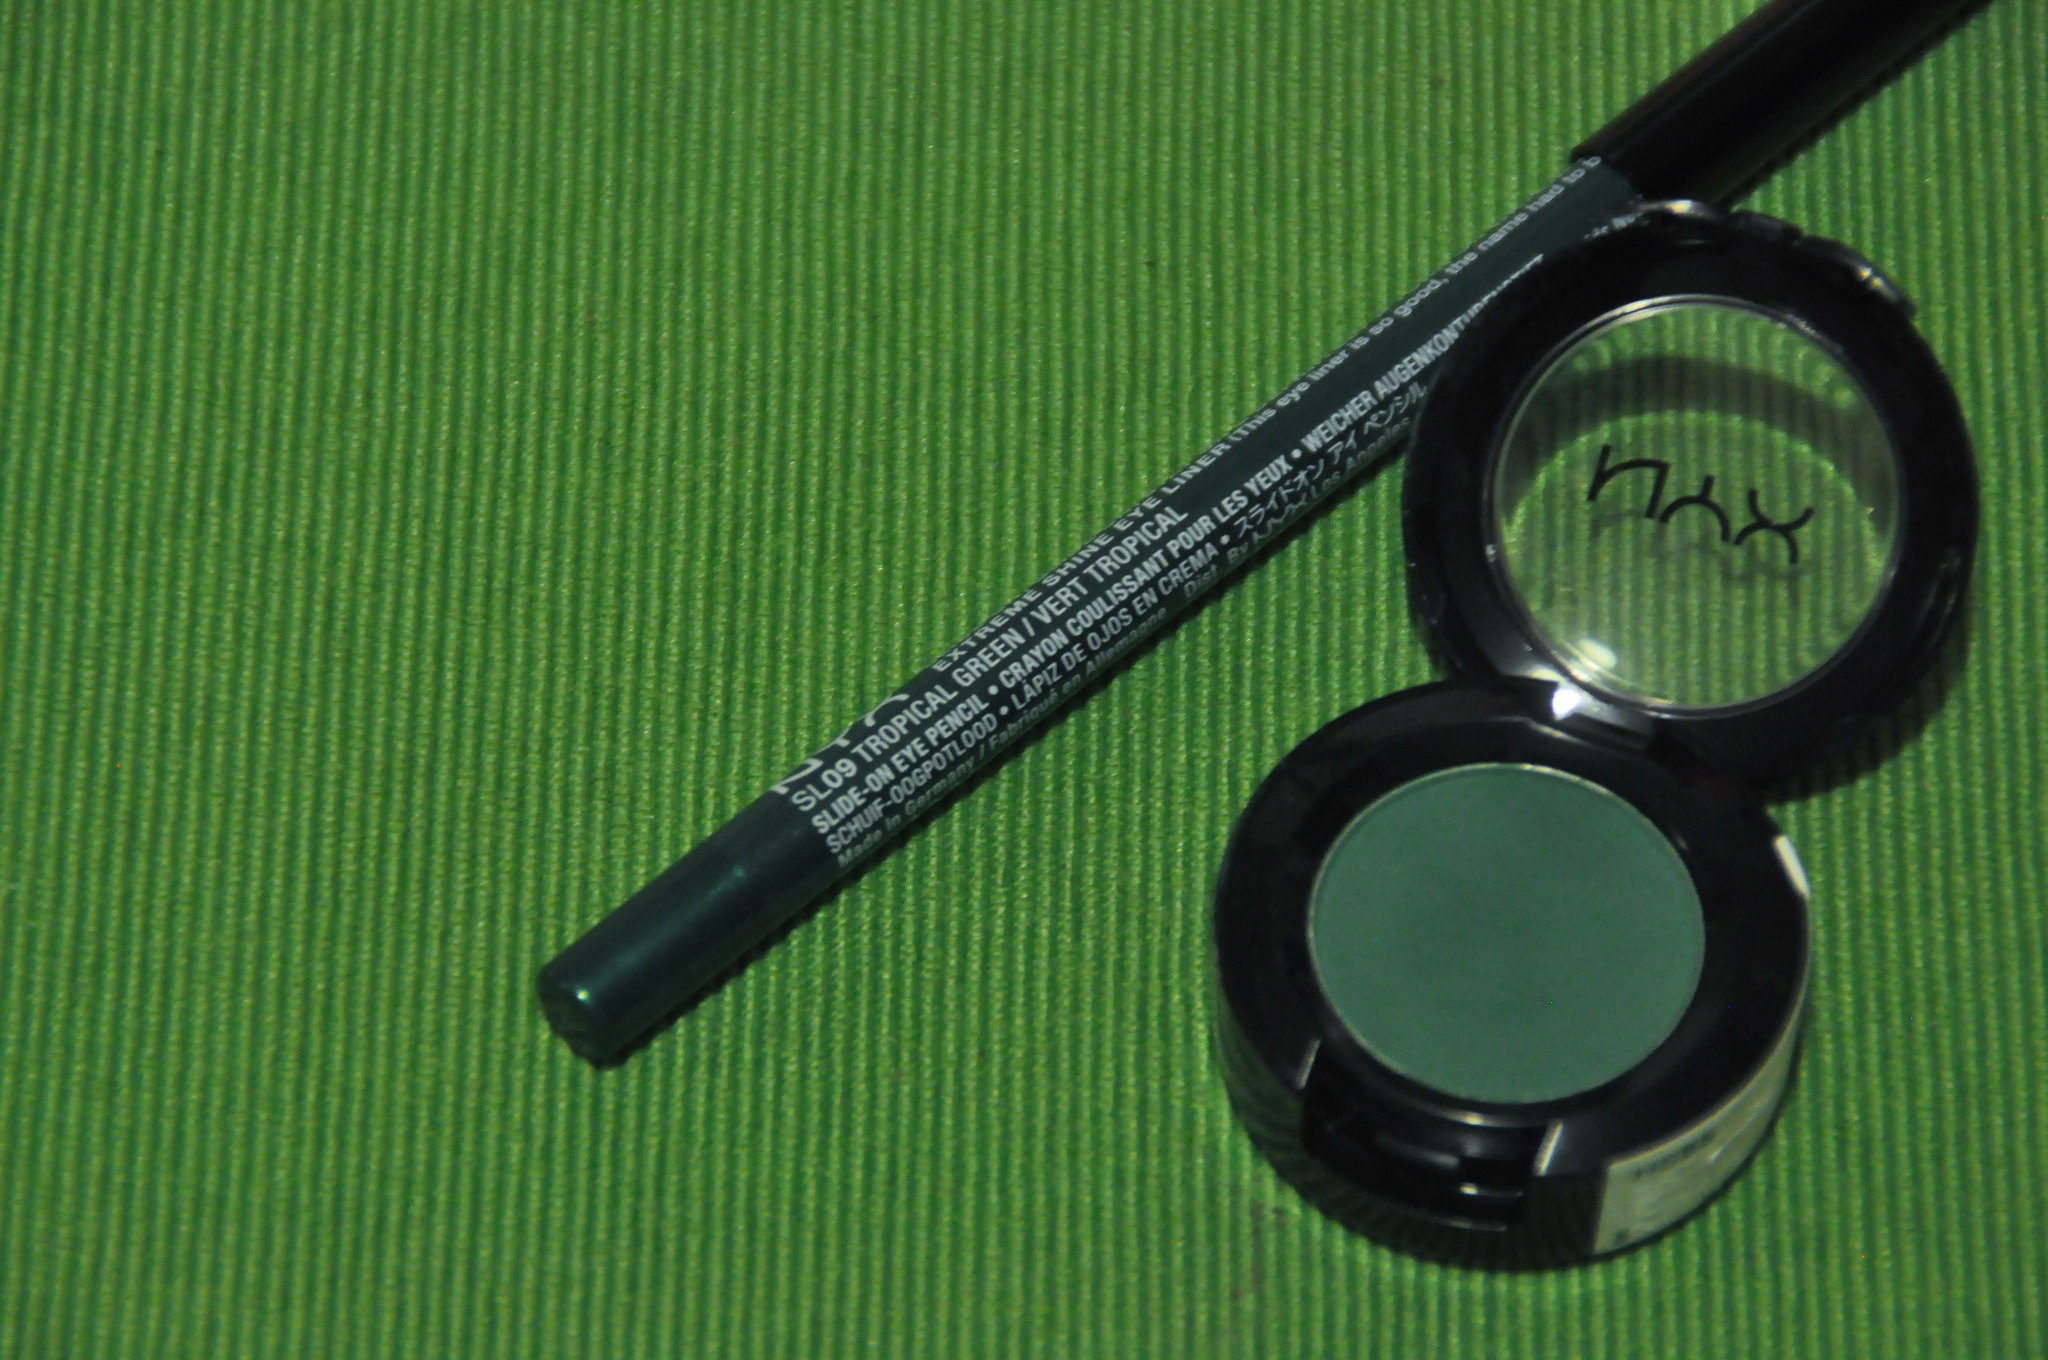 NYX Kush Eyeshadow and Tropical Green Extreme Shine Eye Liner Review